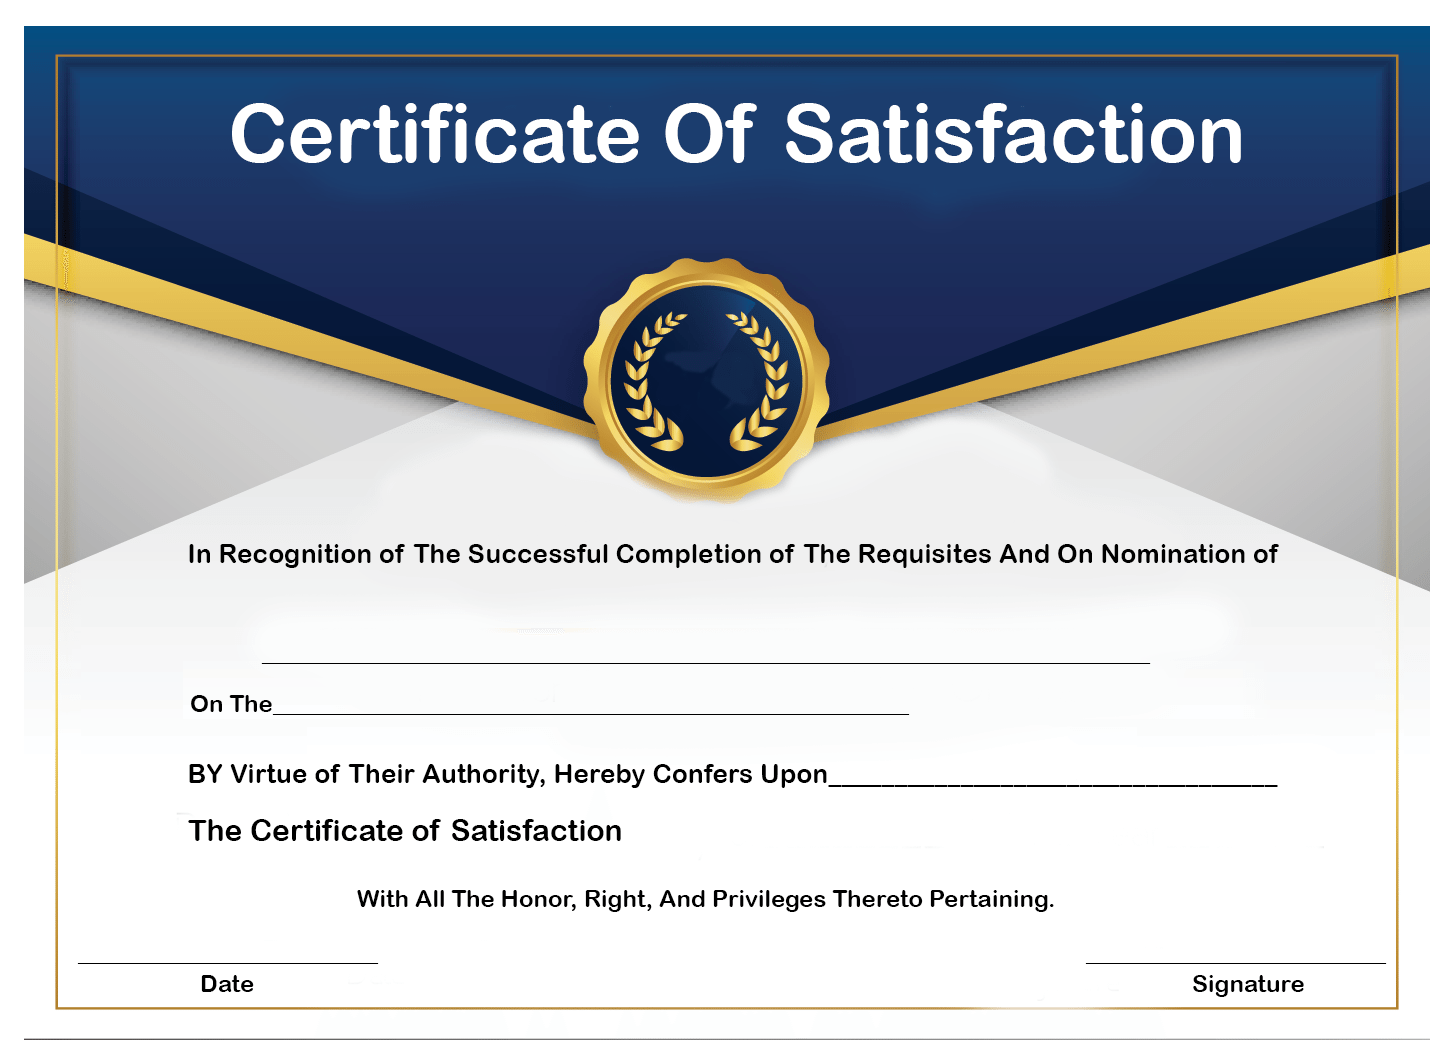 How to Get Certificate of Satisfaction?